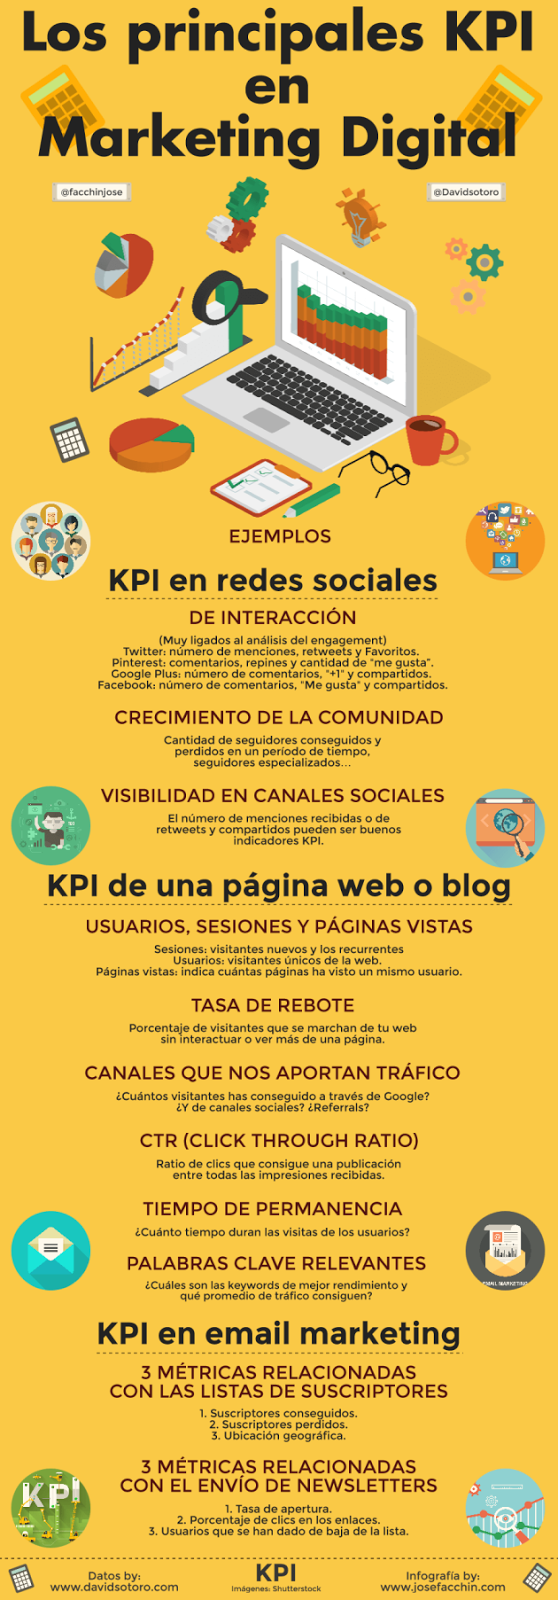 Infografía las principales KPI en Marketing digital.